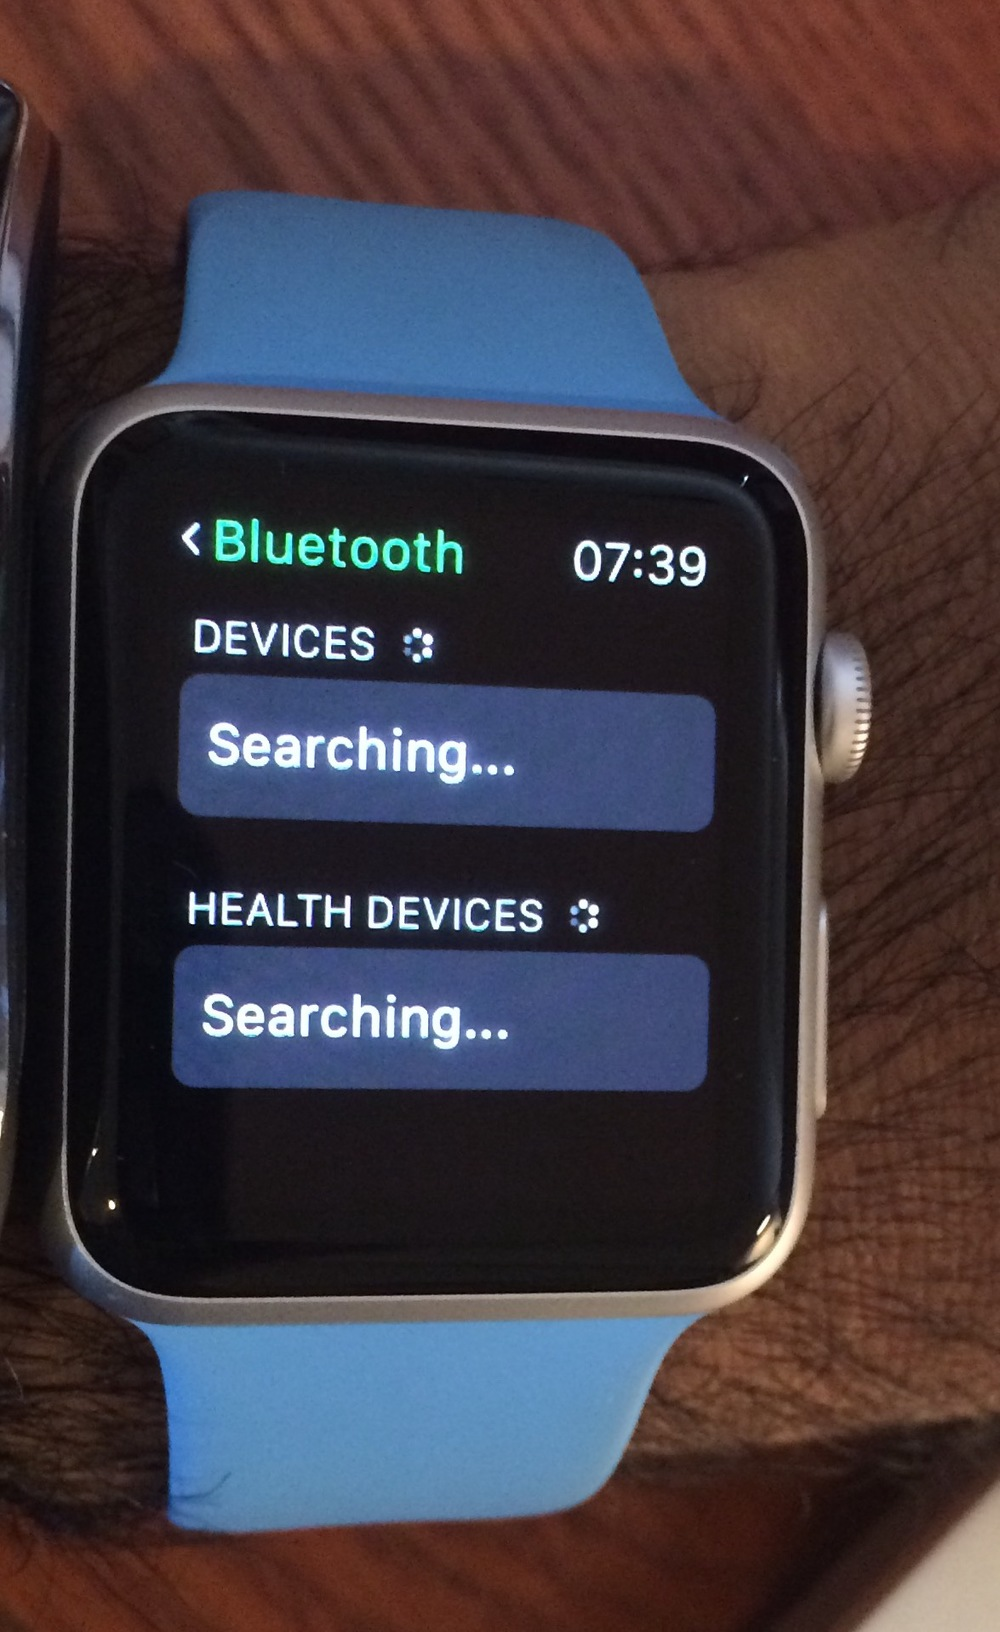 The Apple watch searches for Bluetooth devices